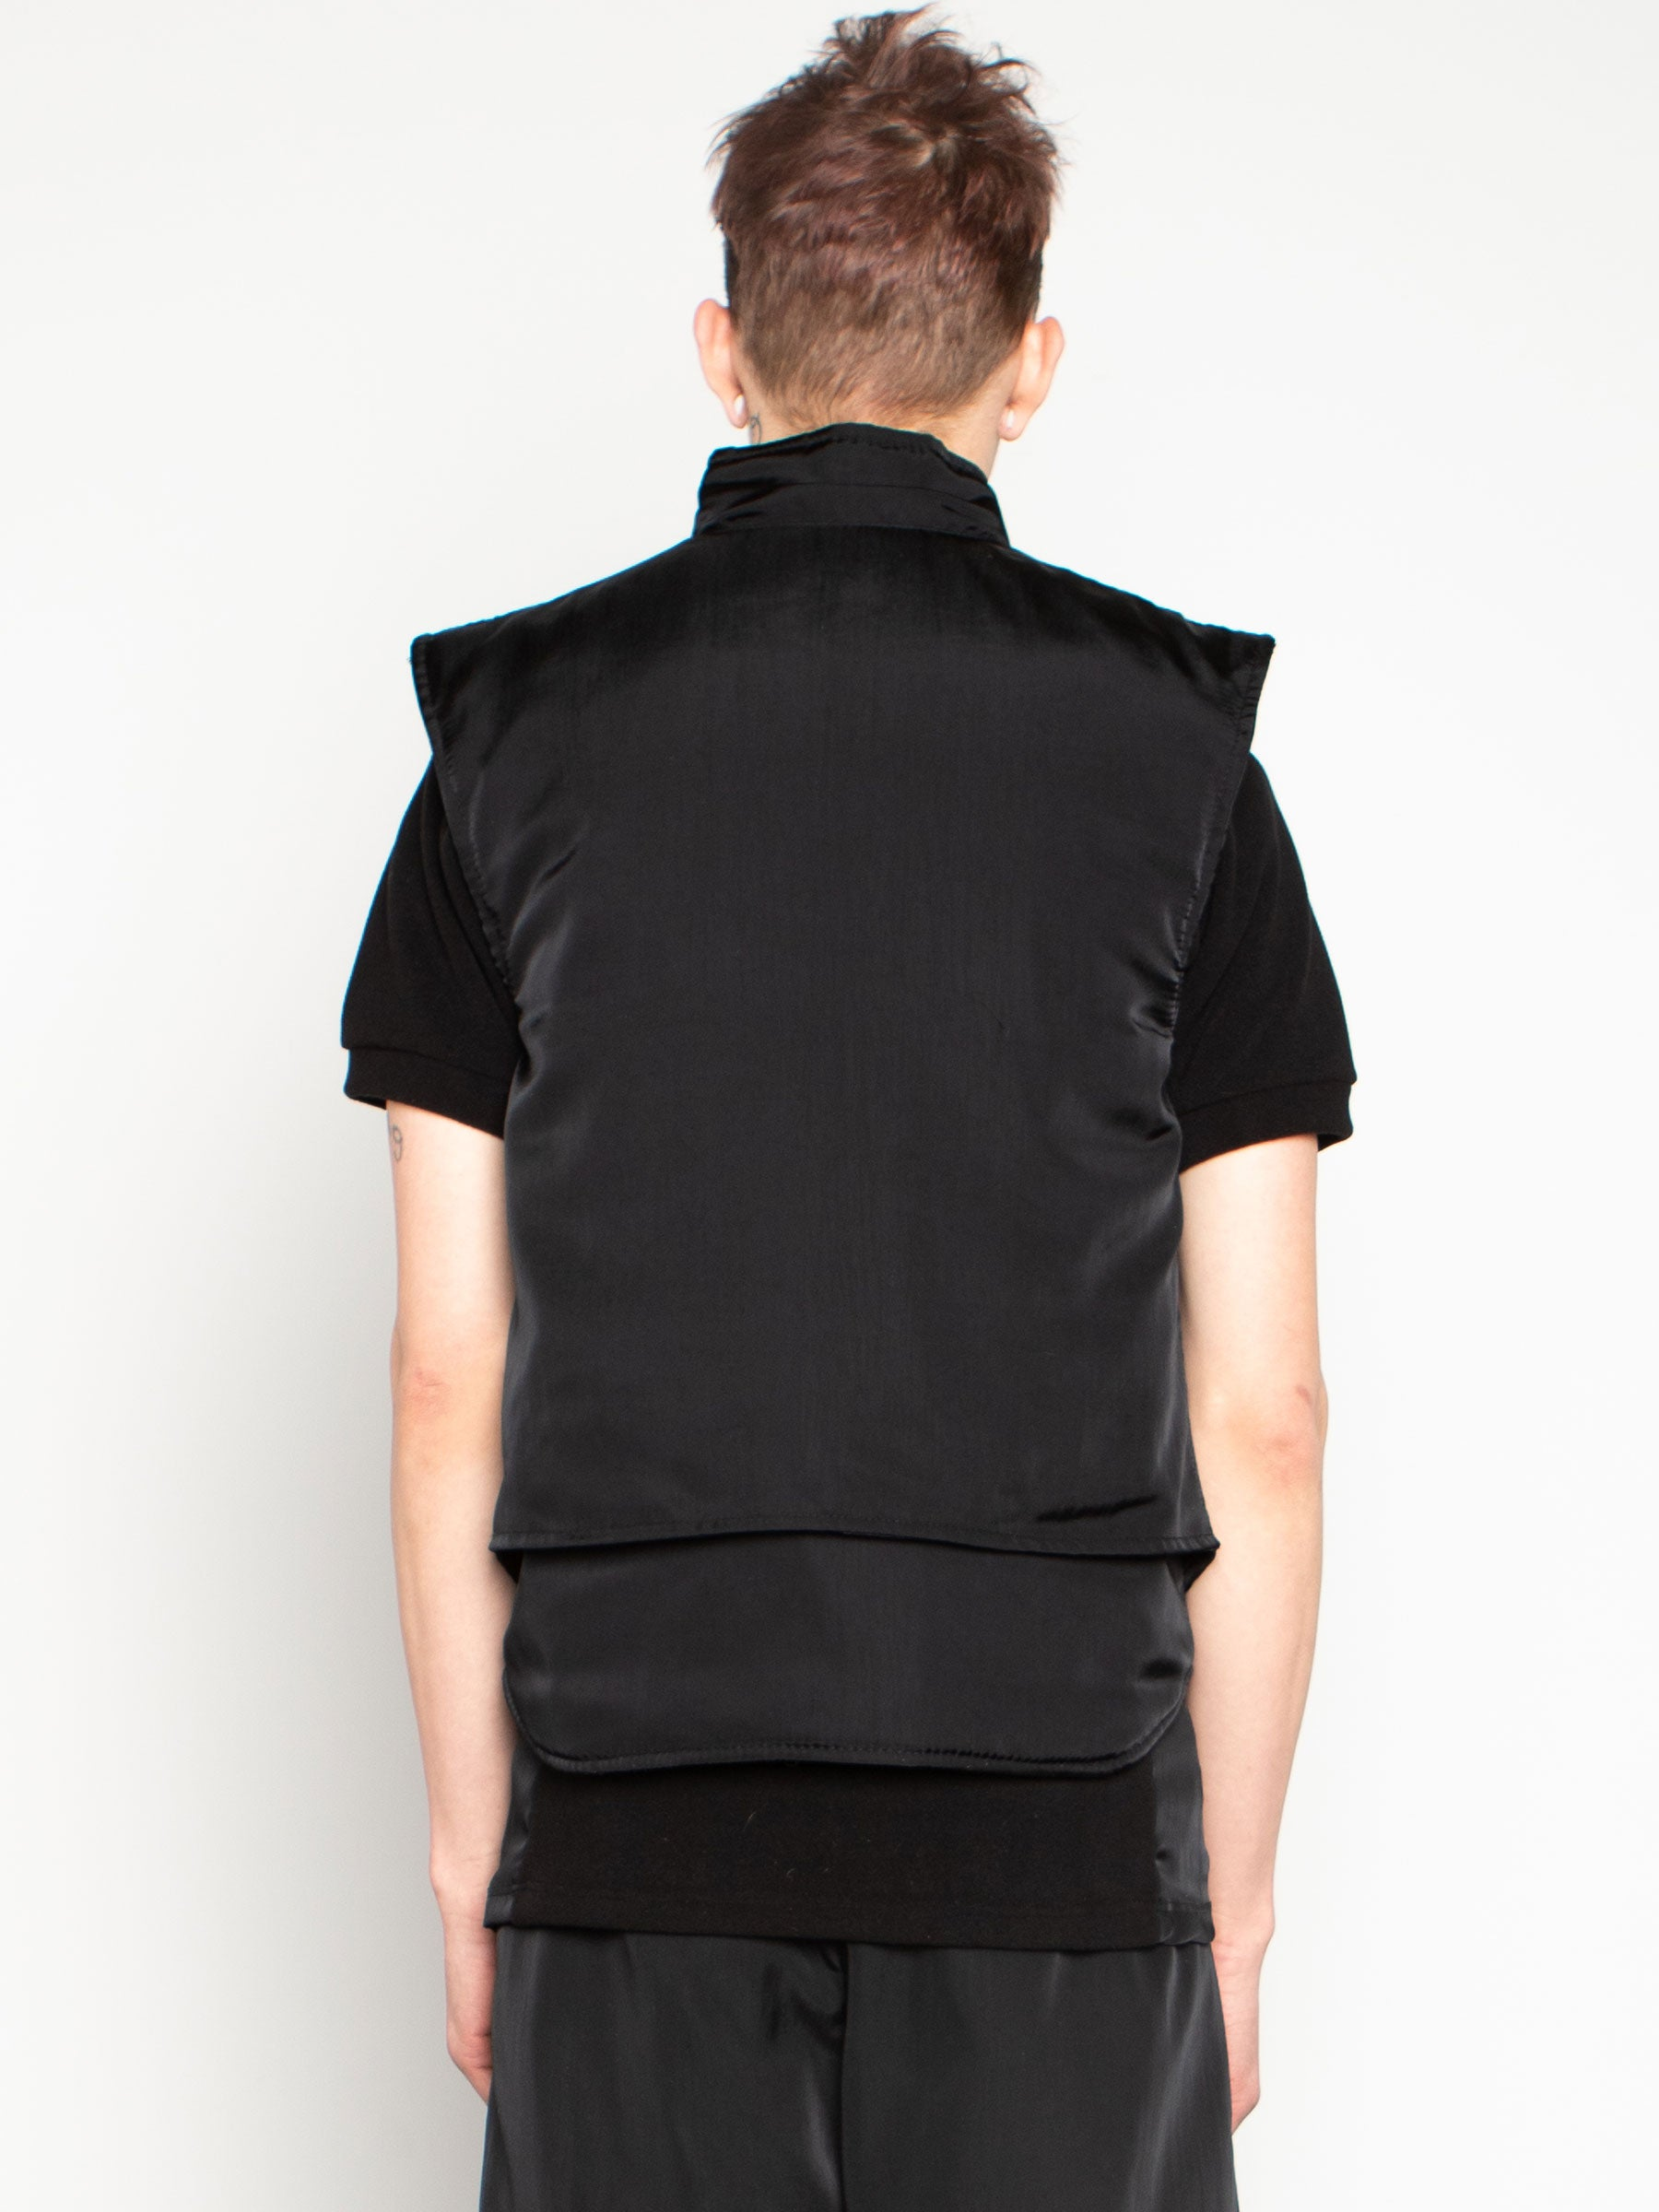 odd92 Shop Cottweiler Spring/Summer 2020 Menswear Black Caddie Puffer Vest - 5